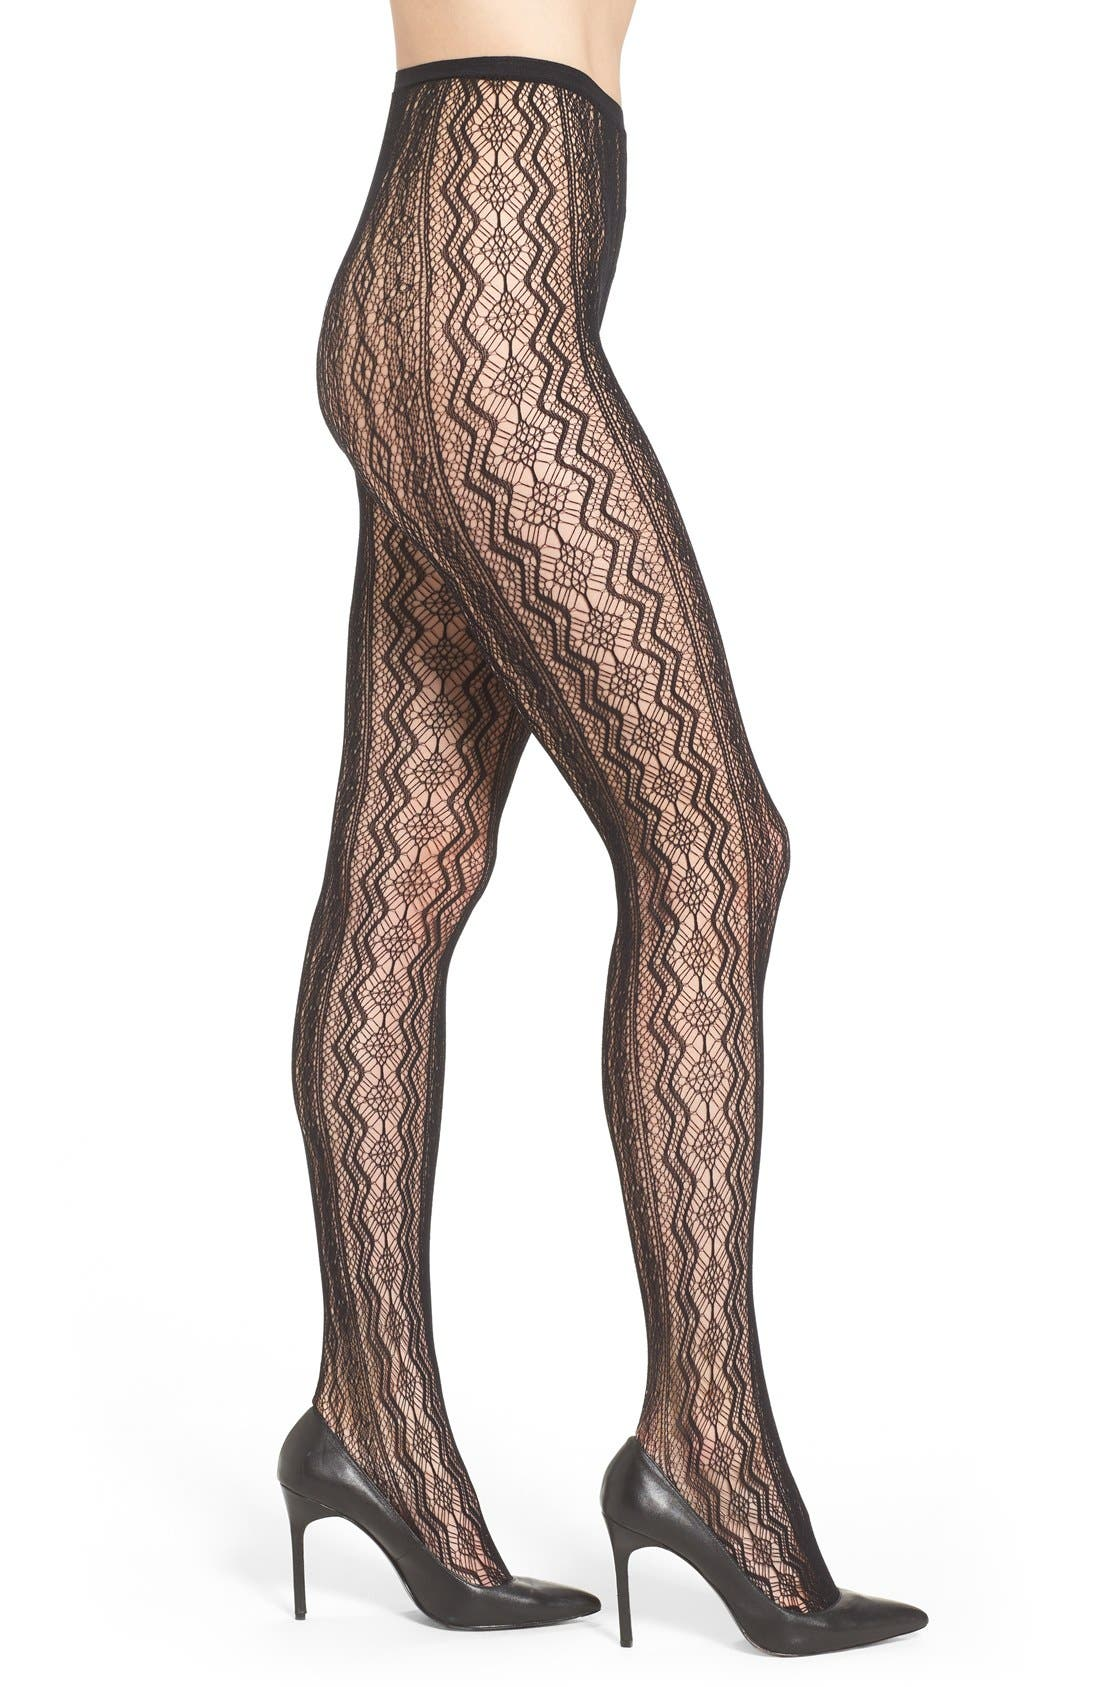 Alternate Image 1 Selected - Hue Vertical Diamond Net Tights